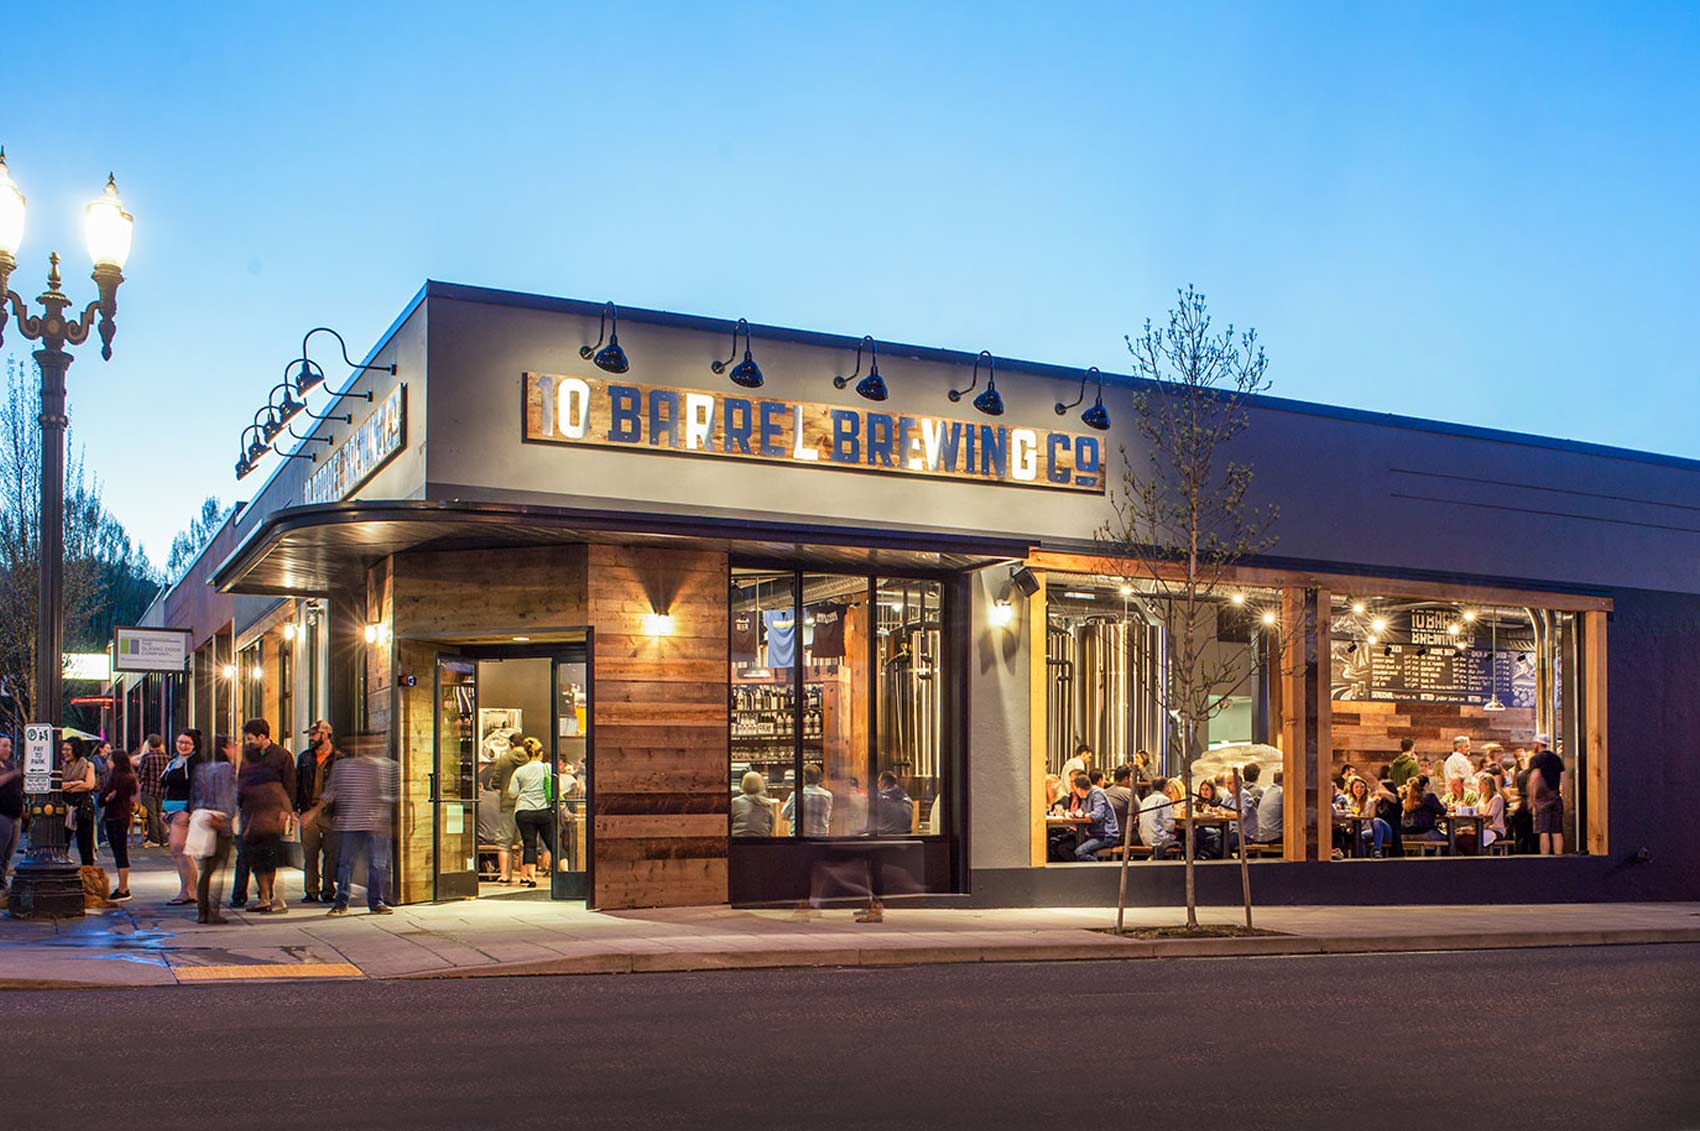 Outside view of 10 Barrel Brewing in Portland, Oregon